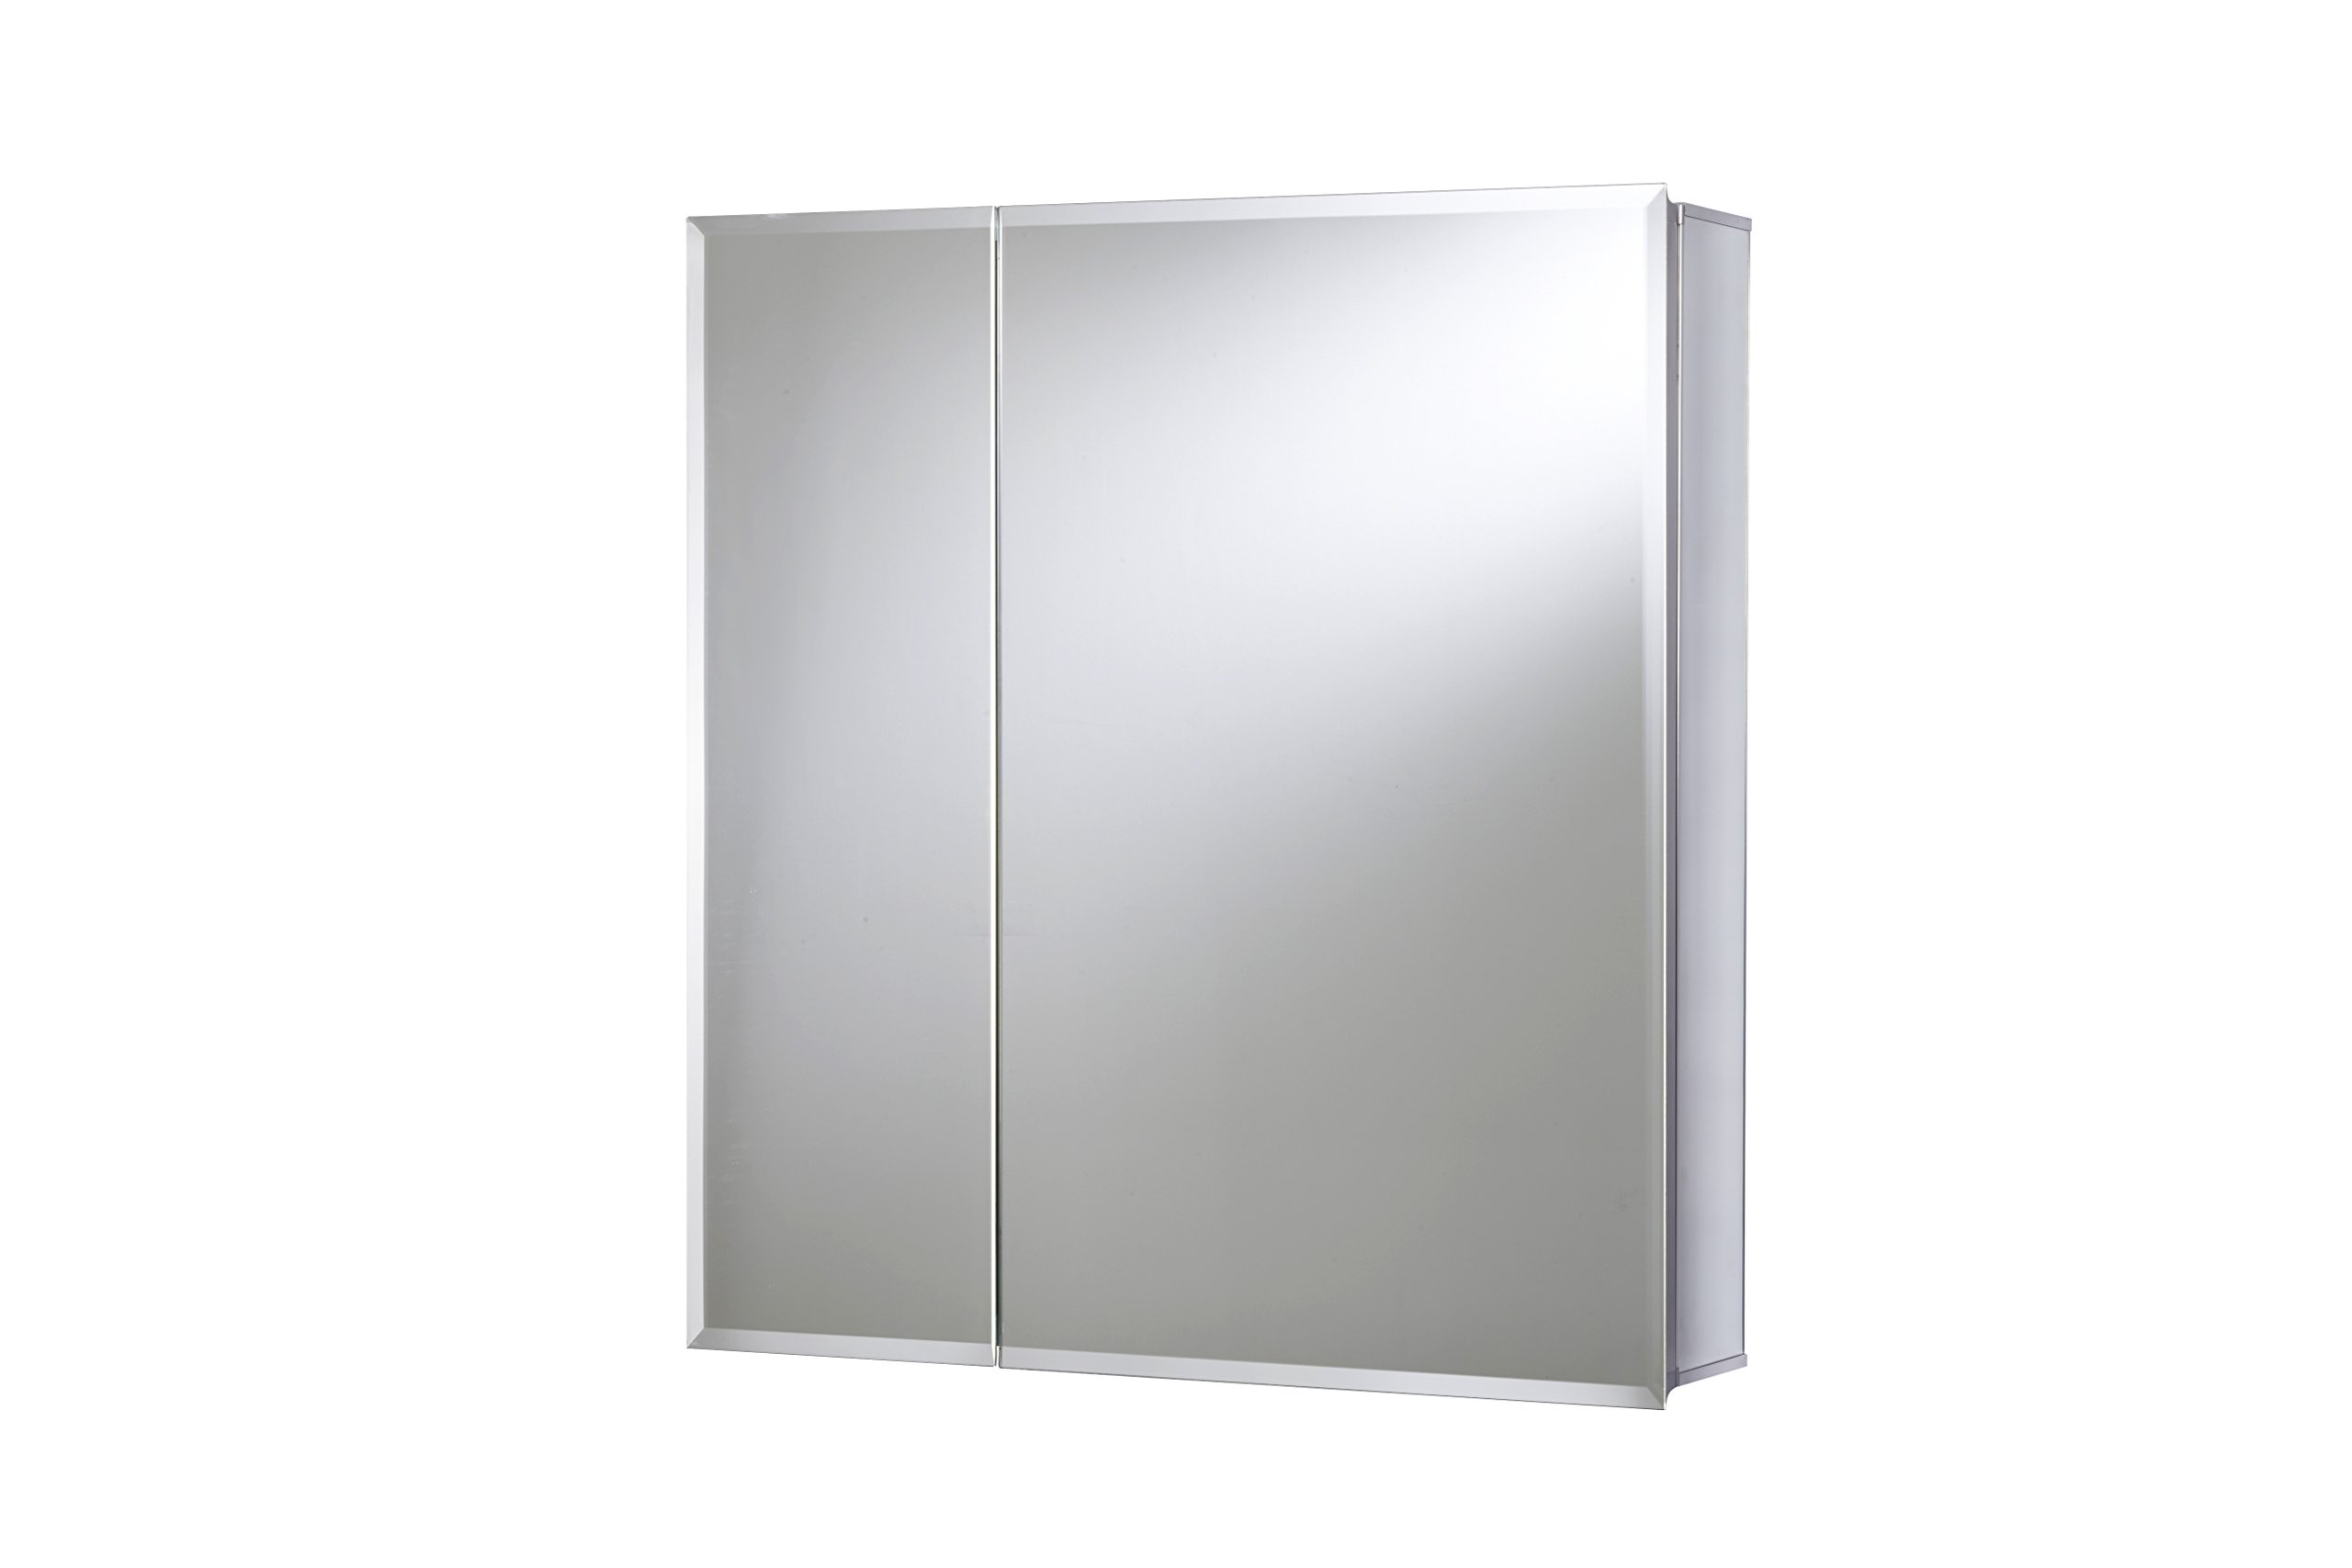 Croydex Newton 26-Inch x 24-Inch Double Door Bi-View Cabinet with Hang 'N' Lock Fitting System